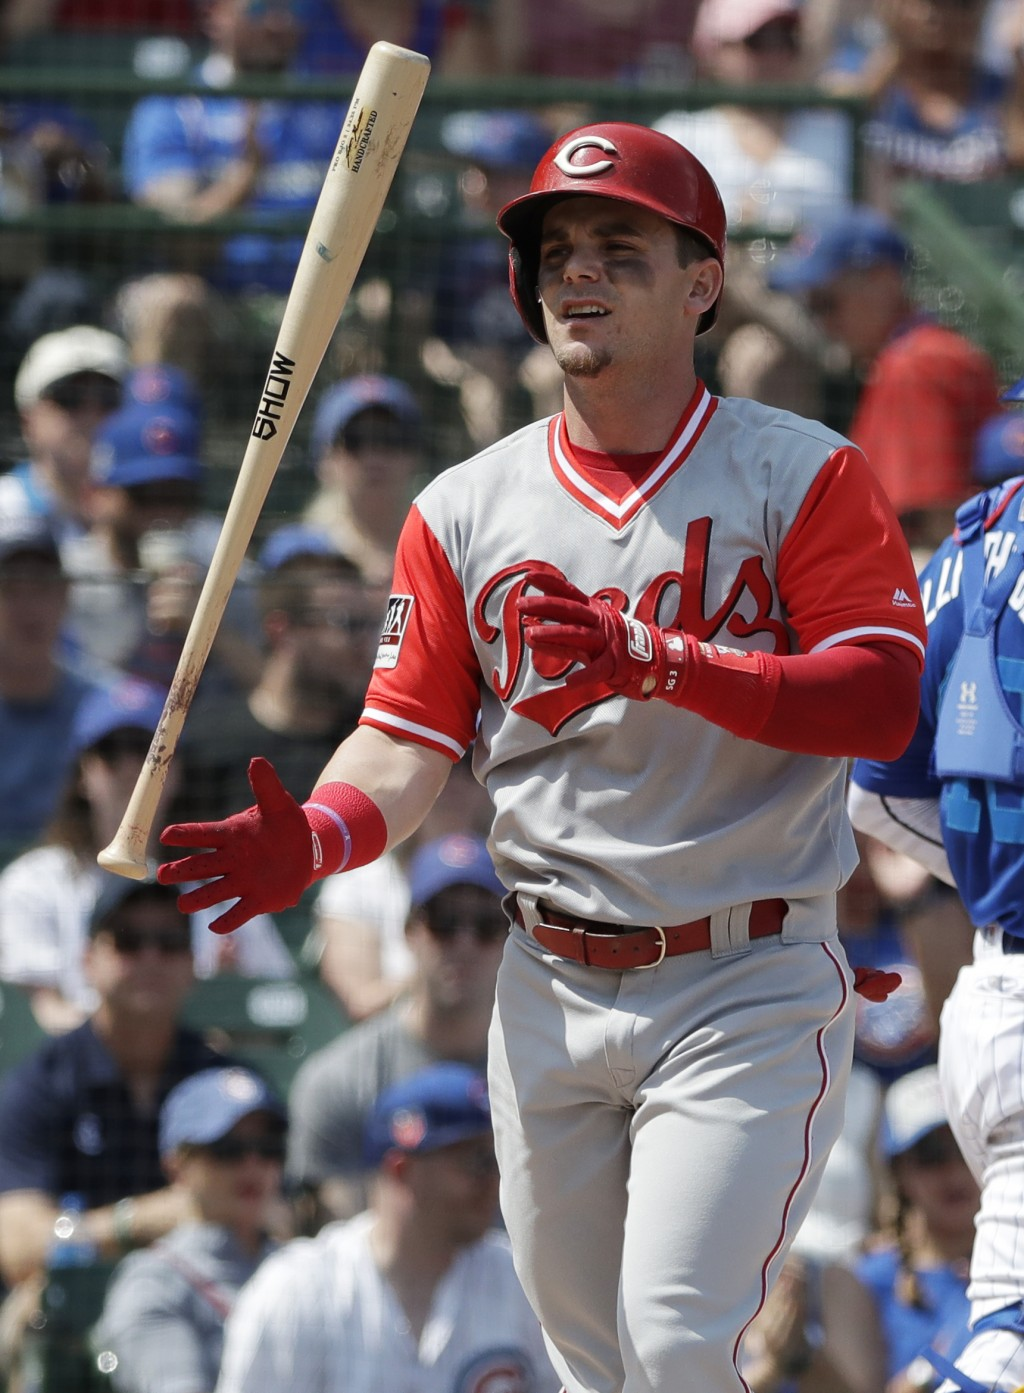 Cincinnati Reds' Scooter Gennett tosses his bat after striking out swinging during the first inning of a baseball game against the Chicago Cubs, Sunda...